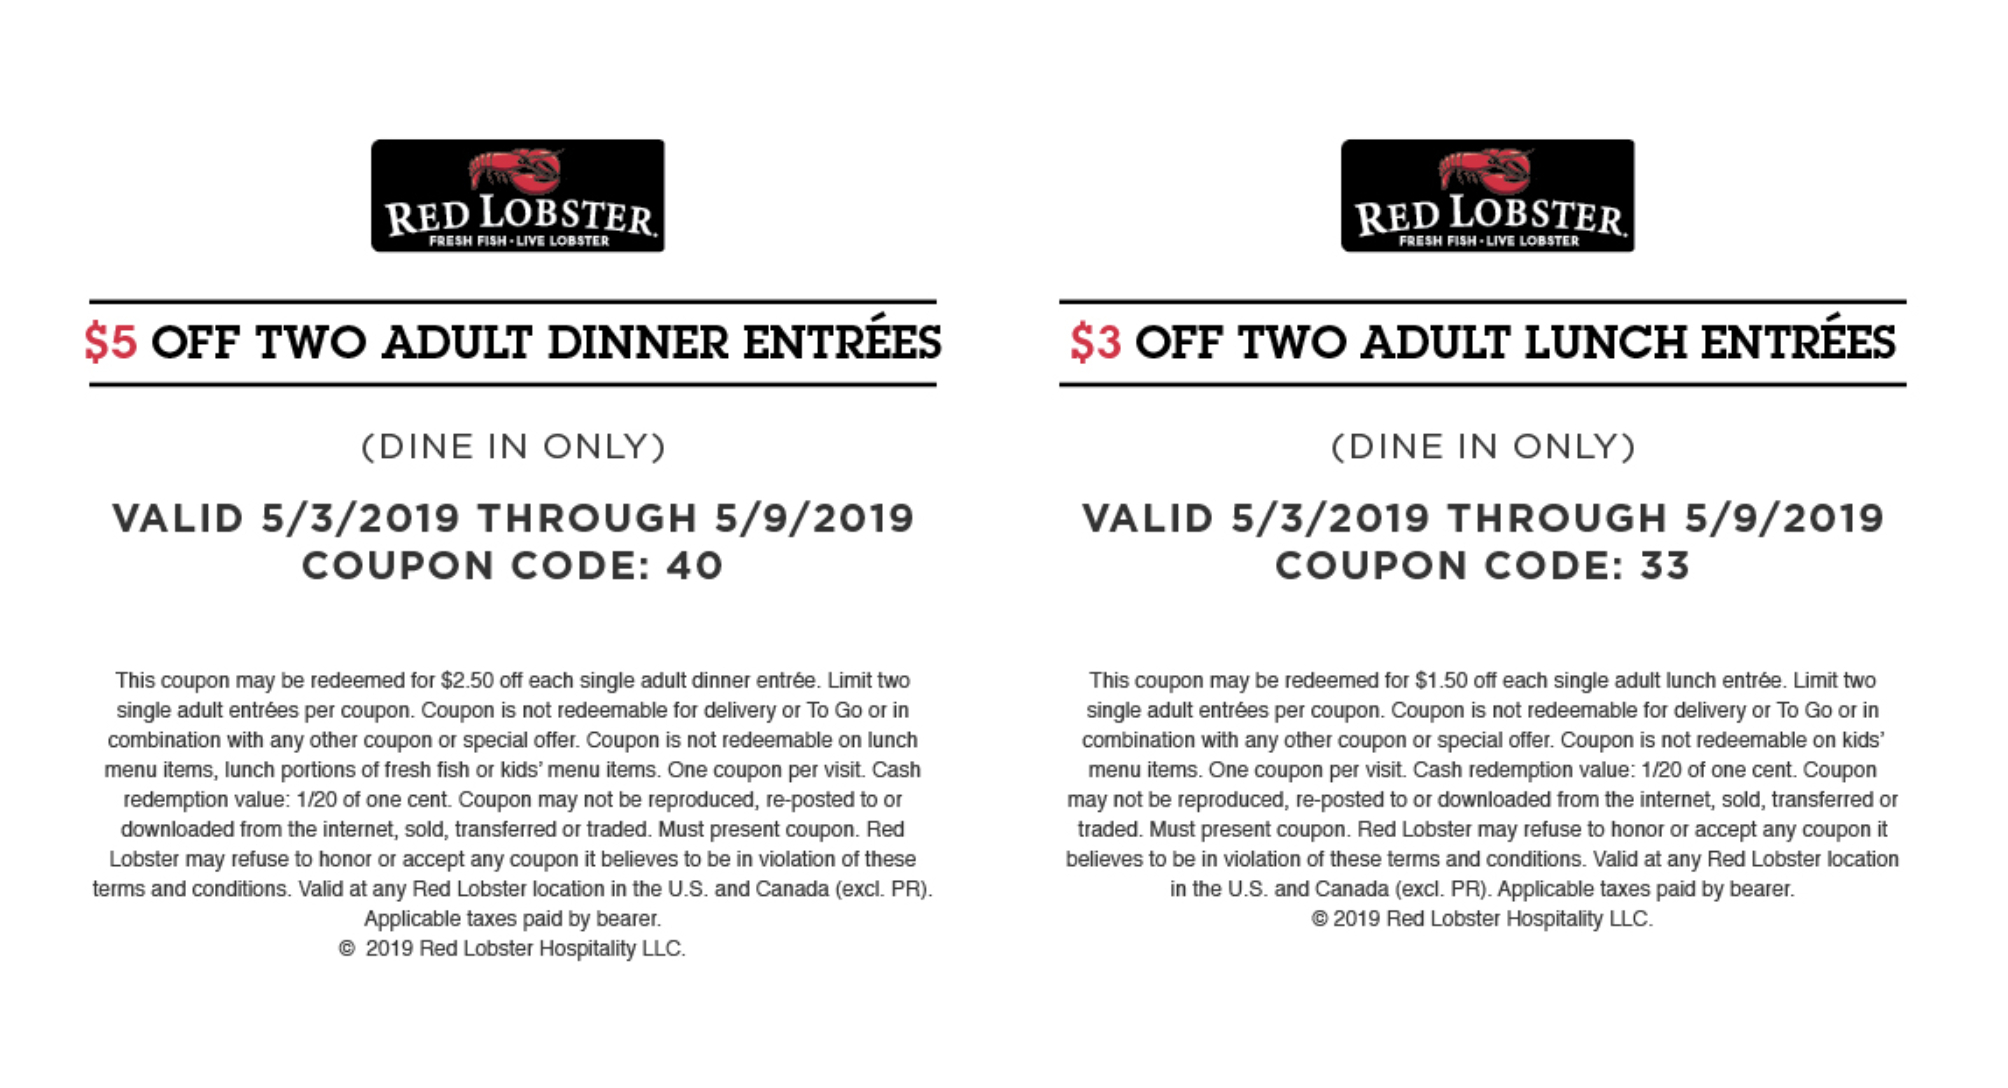 Red Lobster Coupons (Printable Coupons & Mobile) - 2019 - Free Printable Red Lobster Coupons